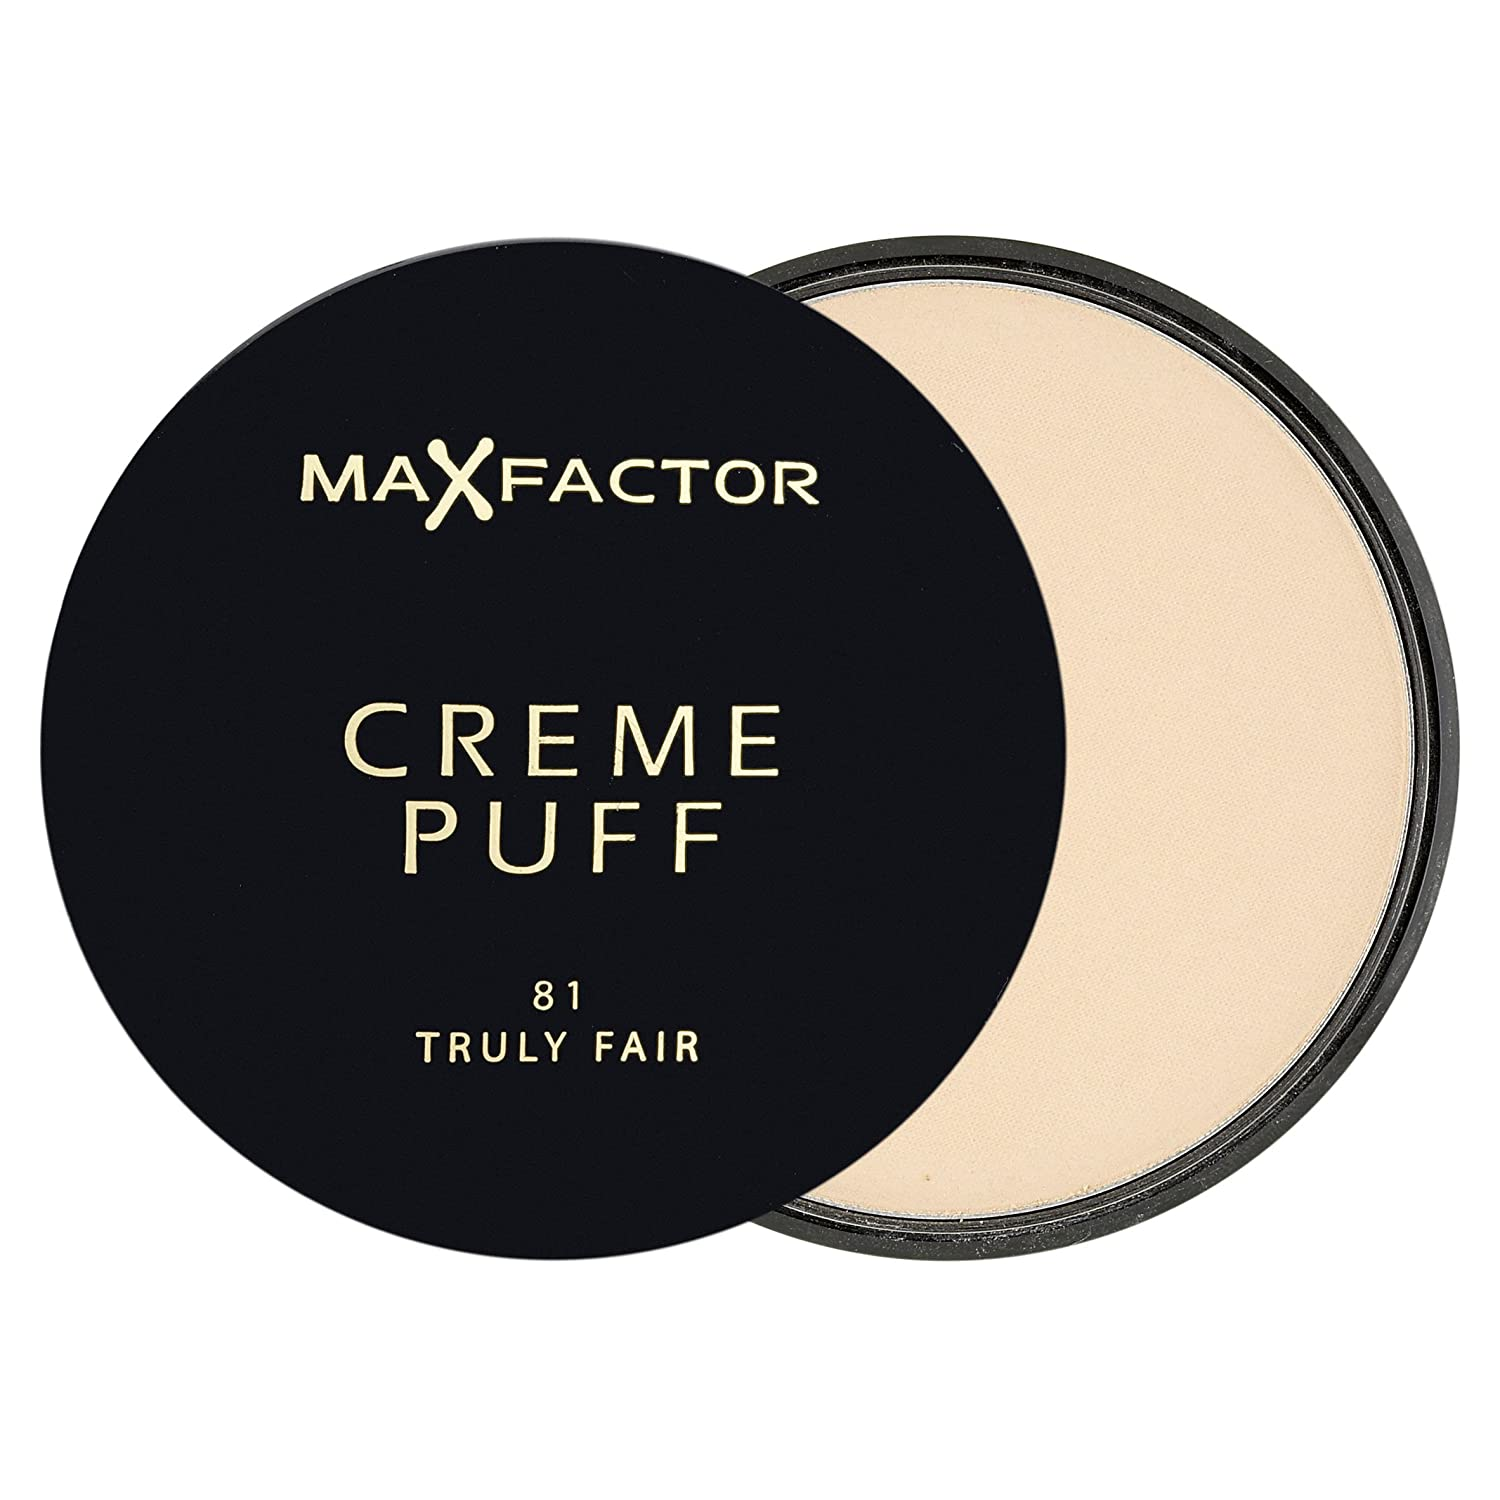 Max Factor Creme Puff Powder Makeup ...